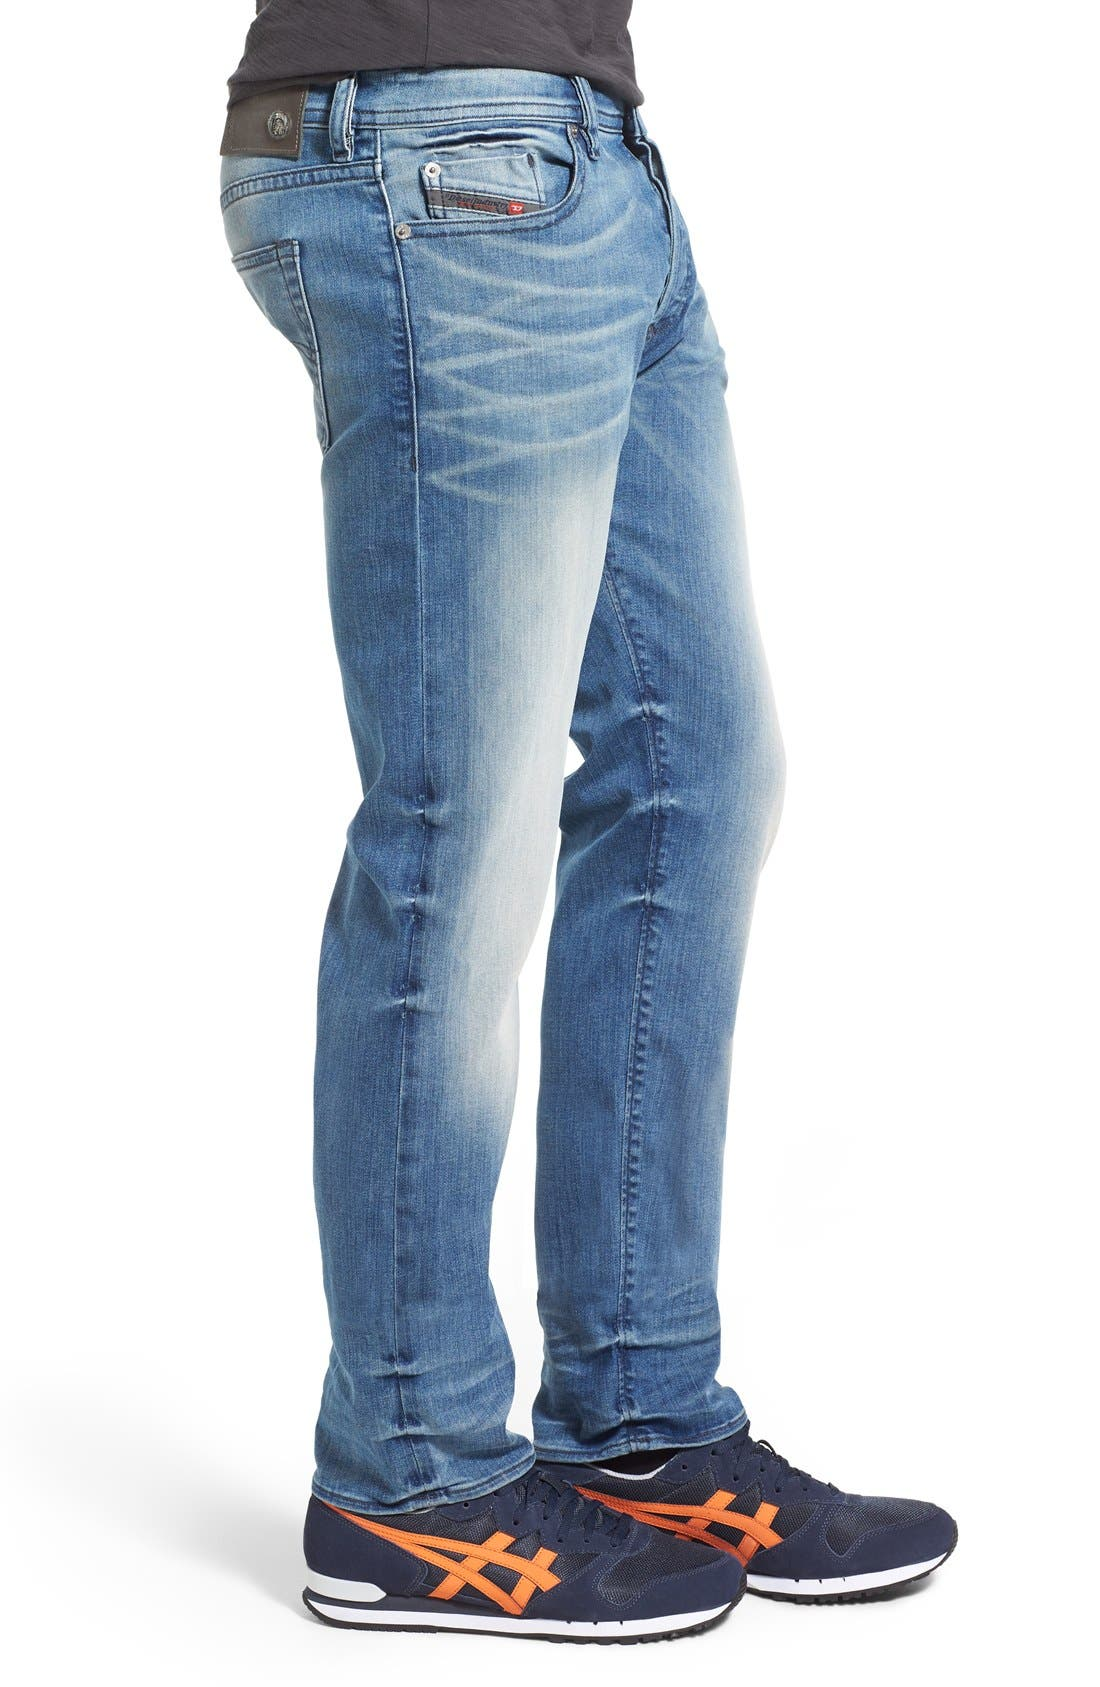 'Buster' Slim Straight Fit Jeans,                             Alternate thumbnail 11, color,                             400